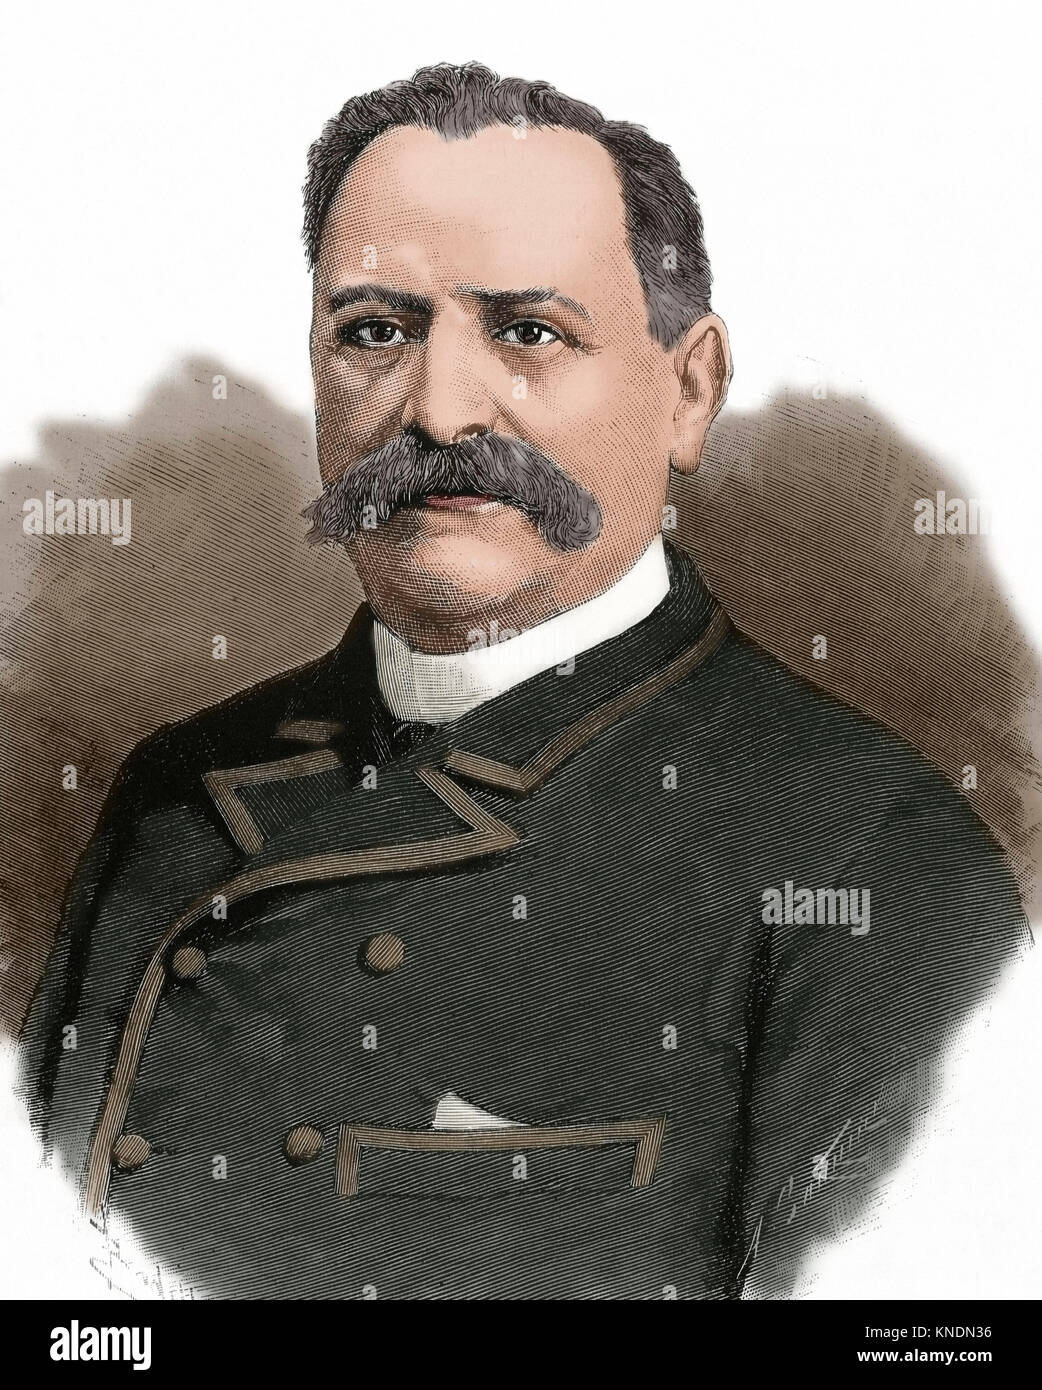 Manuel Pedregal Cañedo (1831-1896). Jurist and Spanish politician, Minister for Finance during the First Spanish - Stock Image